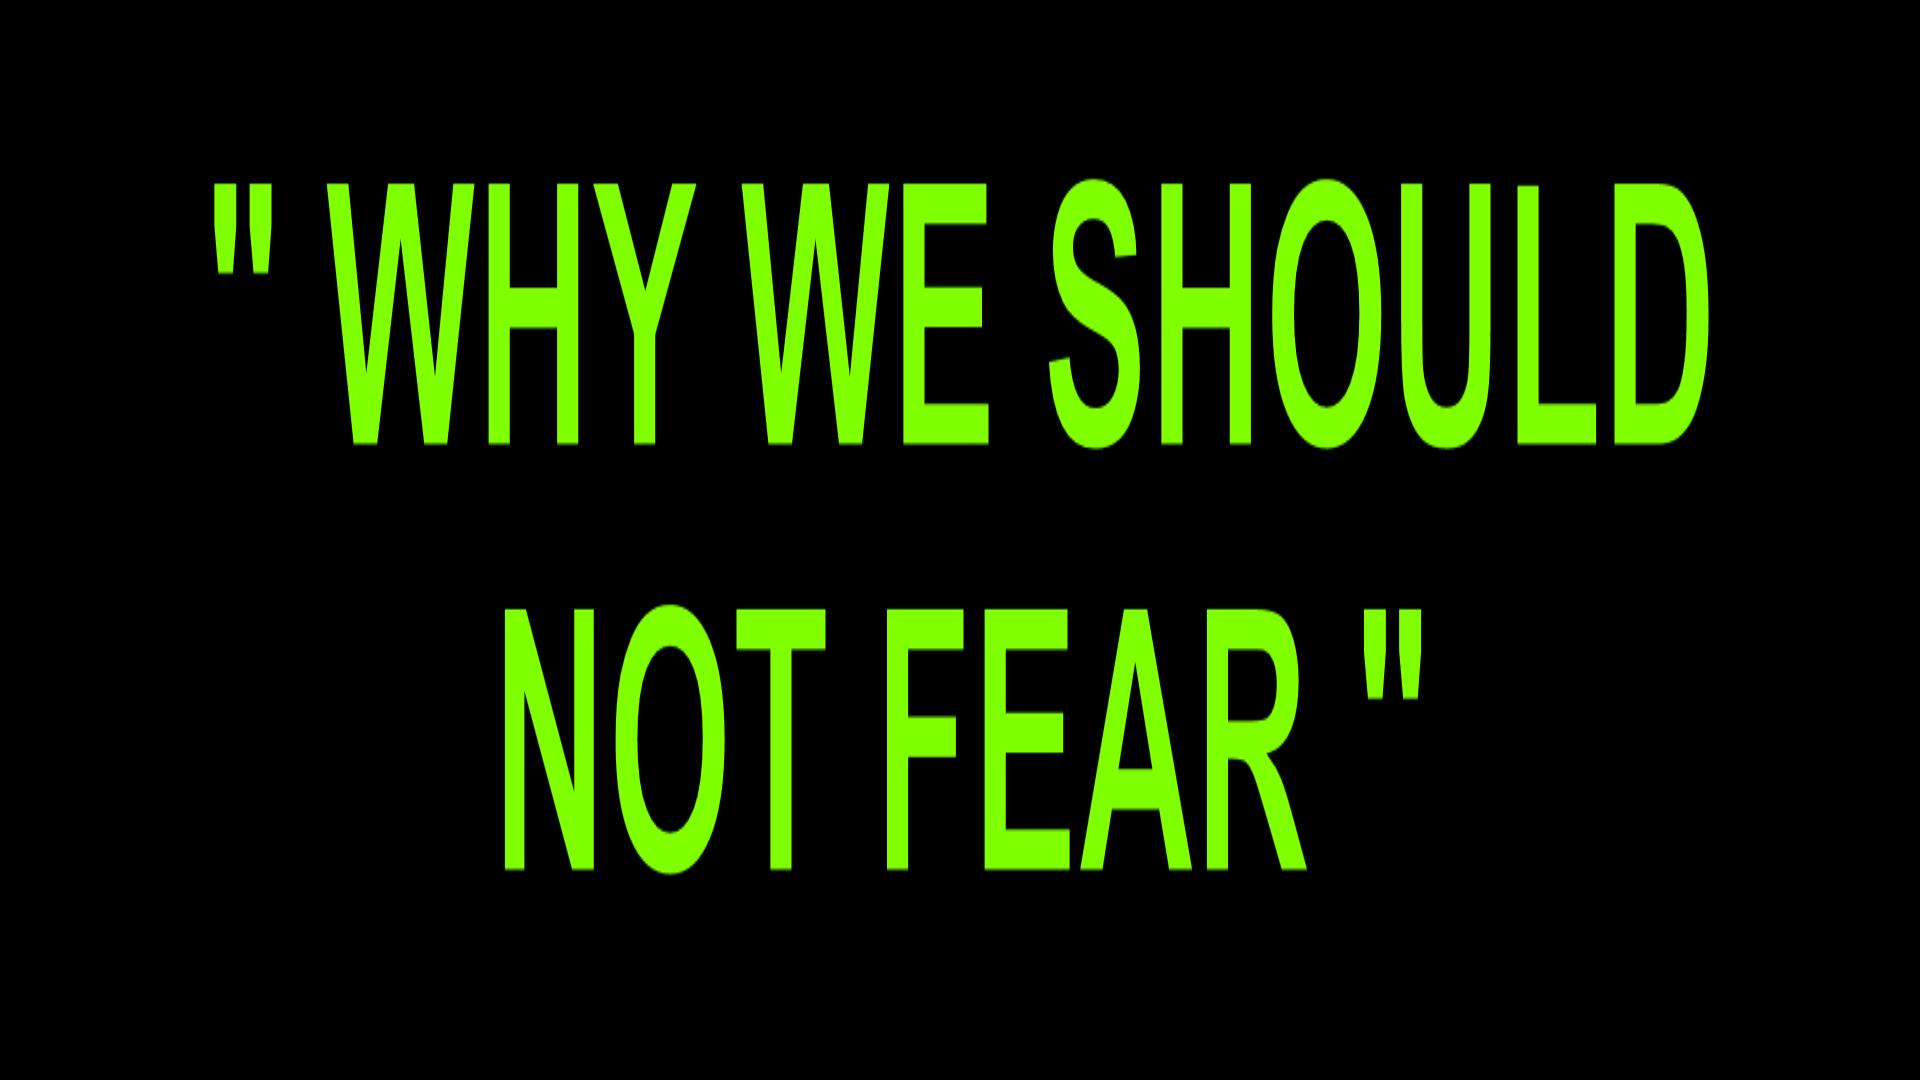 WHY WE SHOULD NOT FEAR